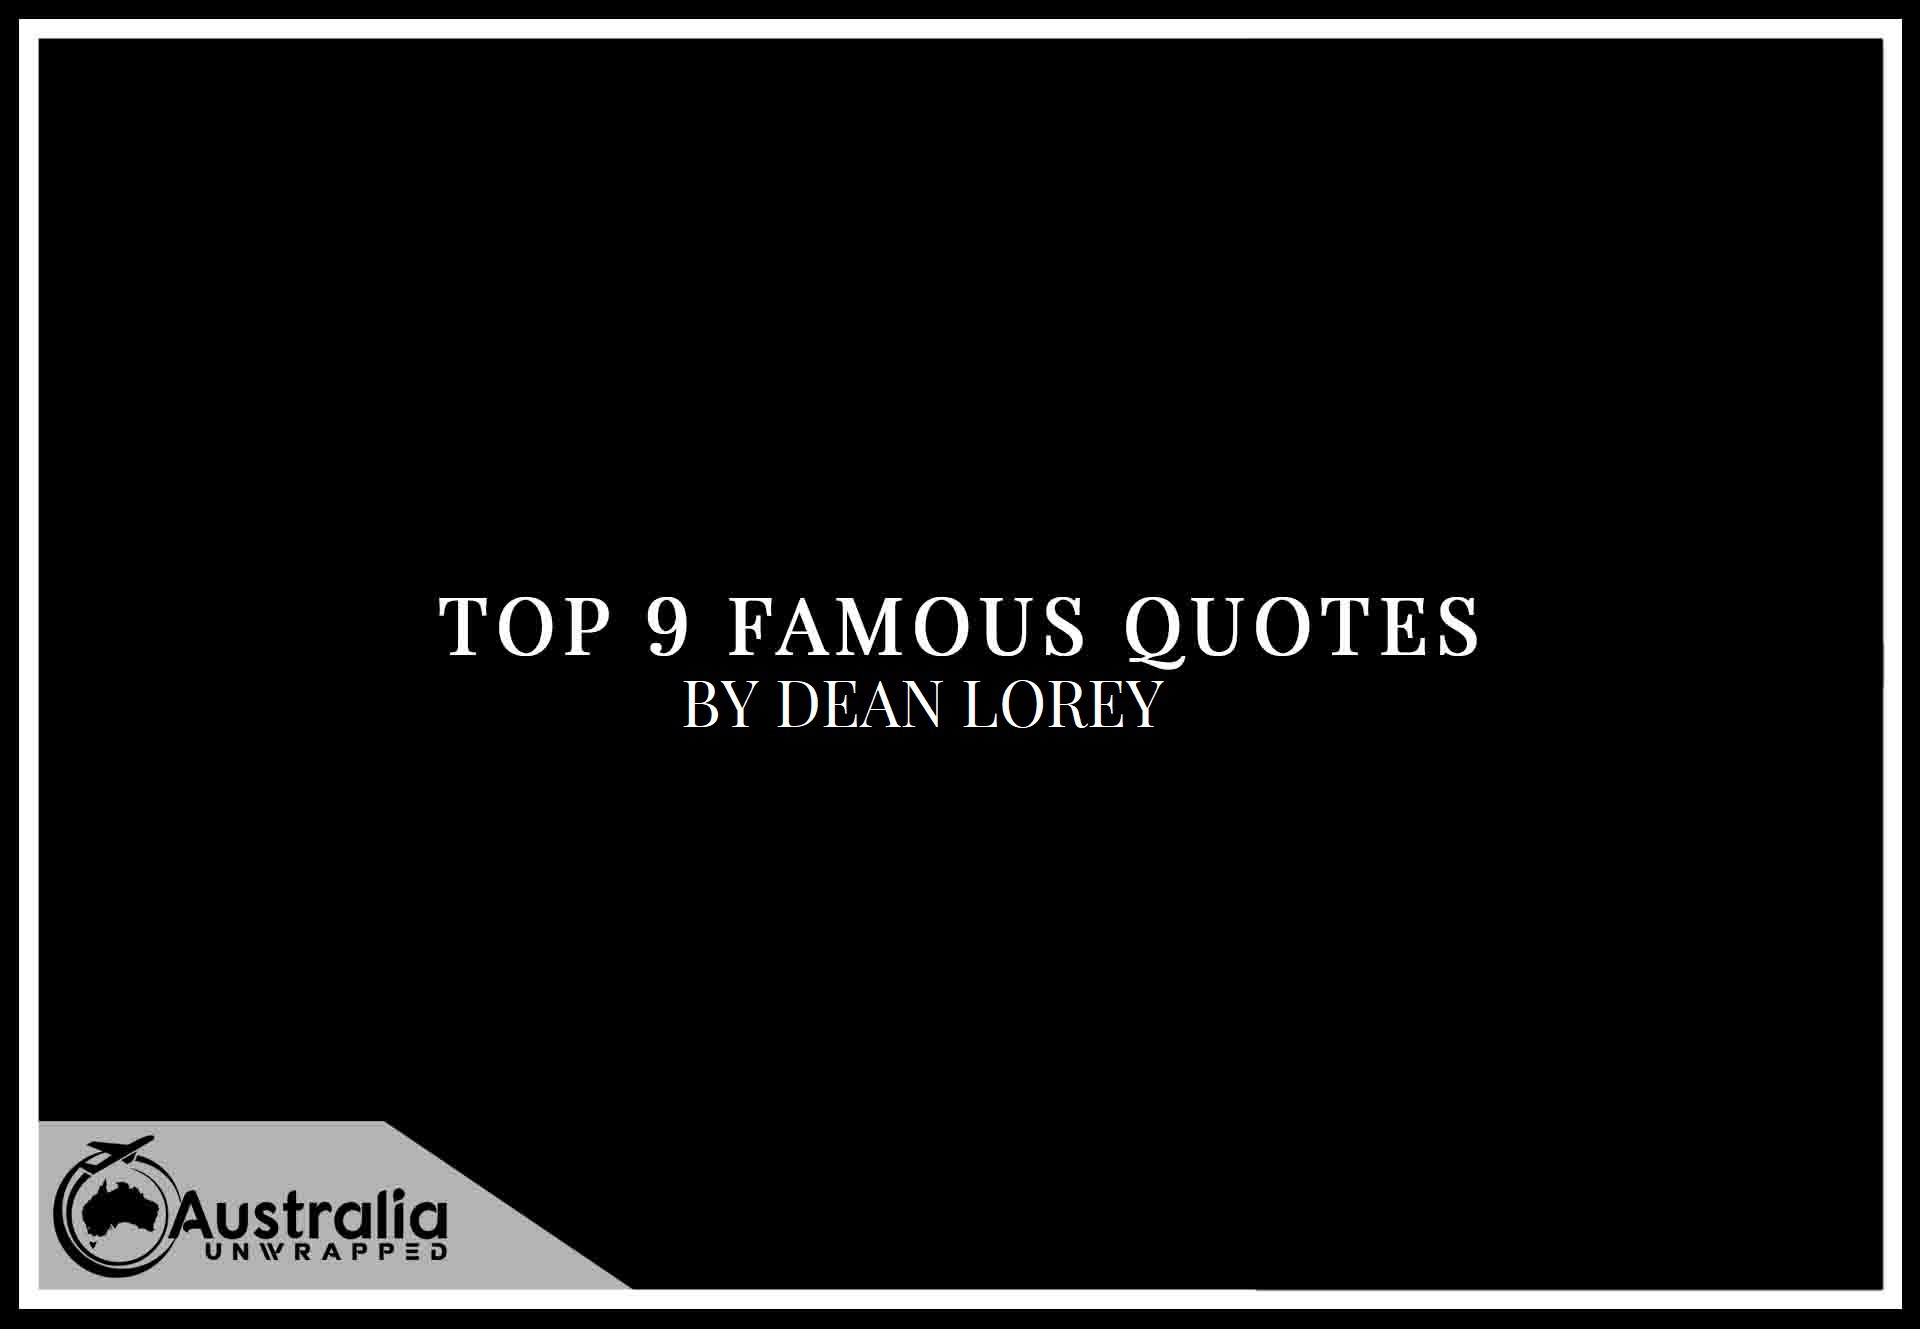 Top 9 Famous Quotes by Author Dean Lorey